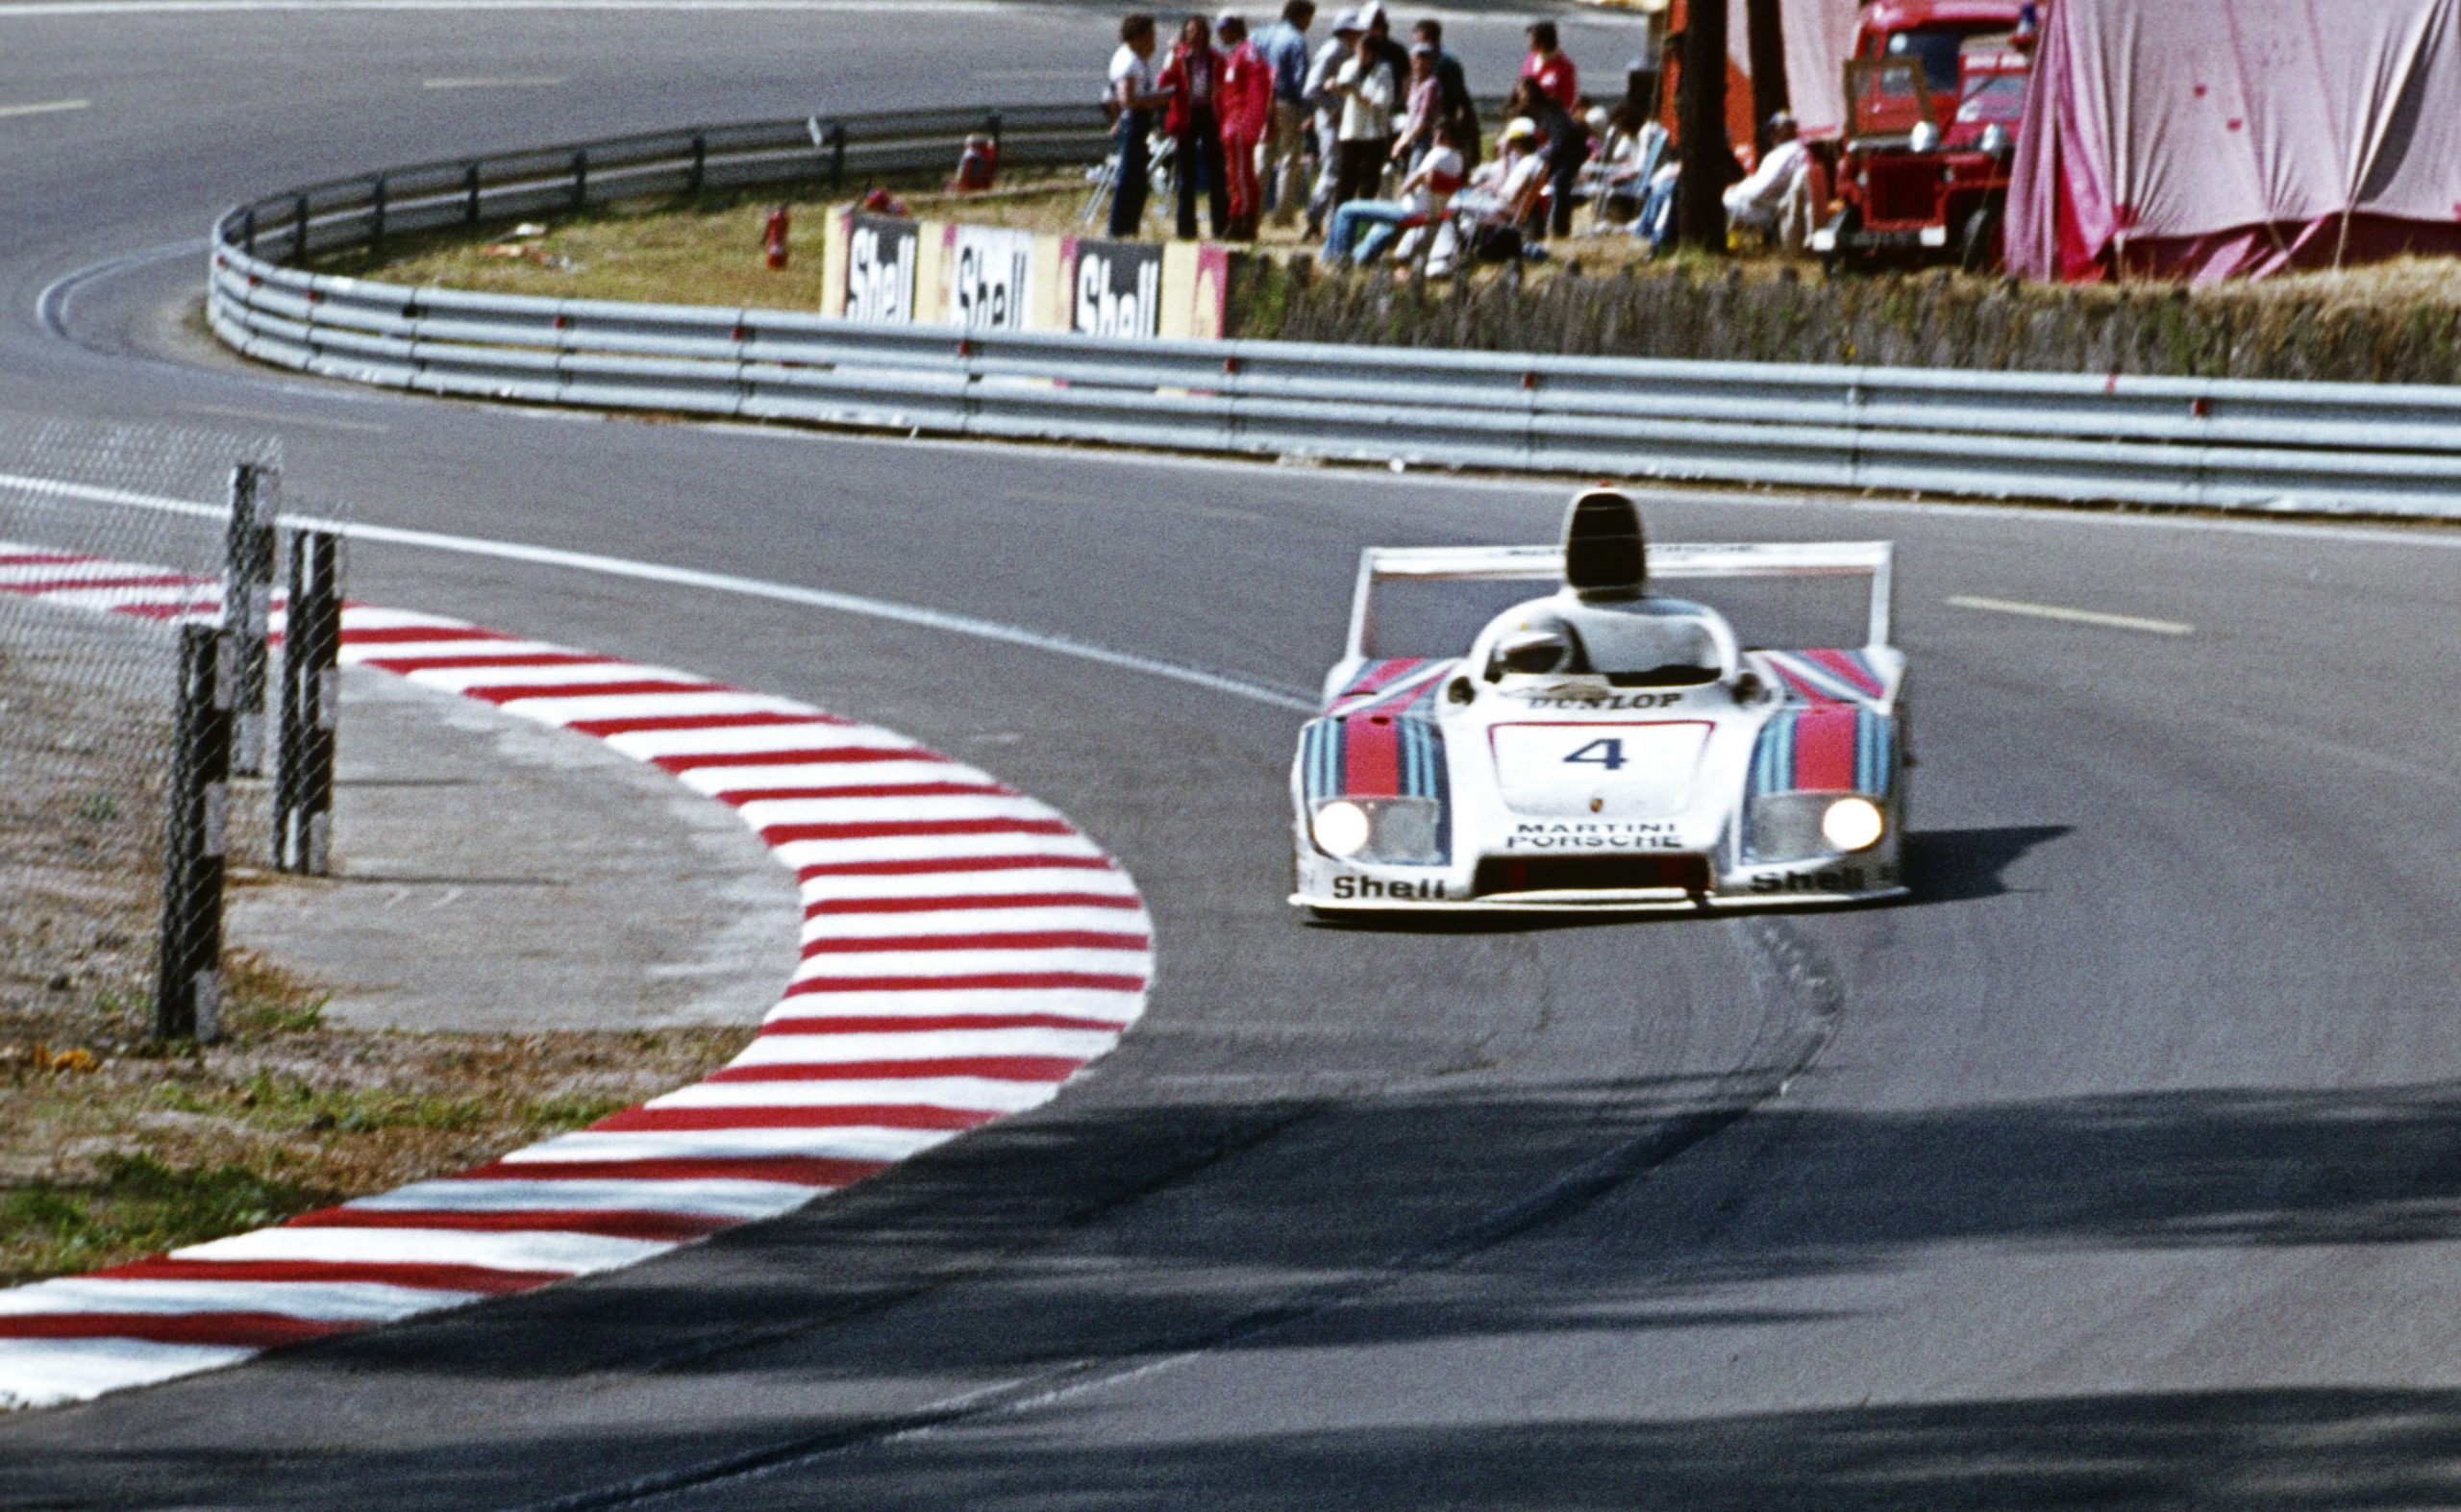 13 times luck wasn't on these drivers' sides at Le Mans